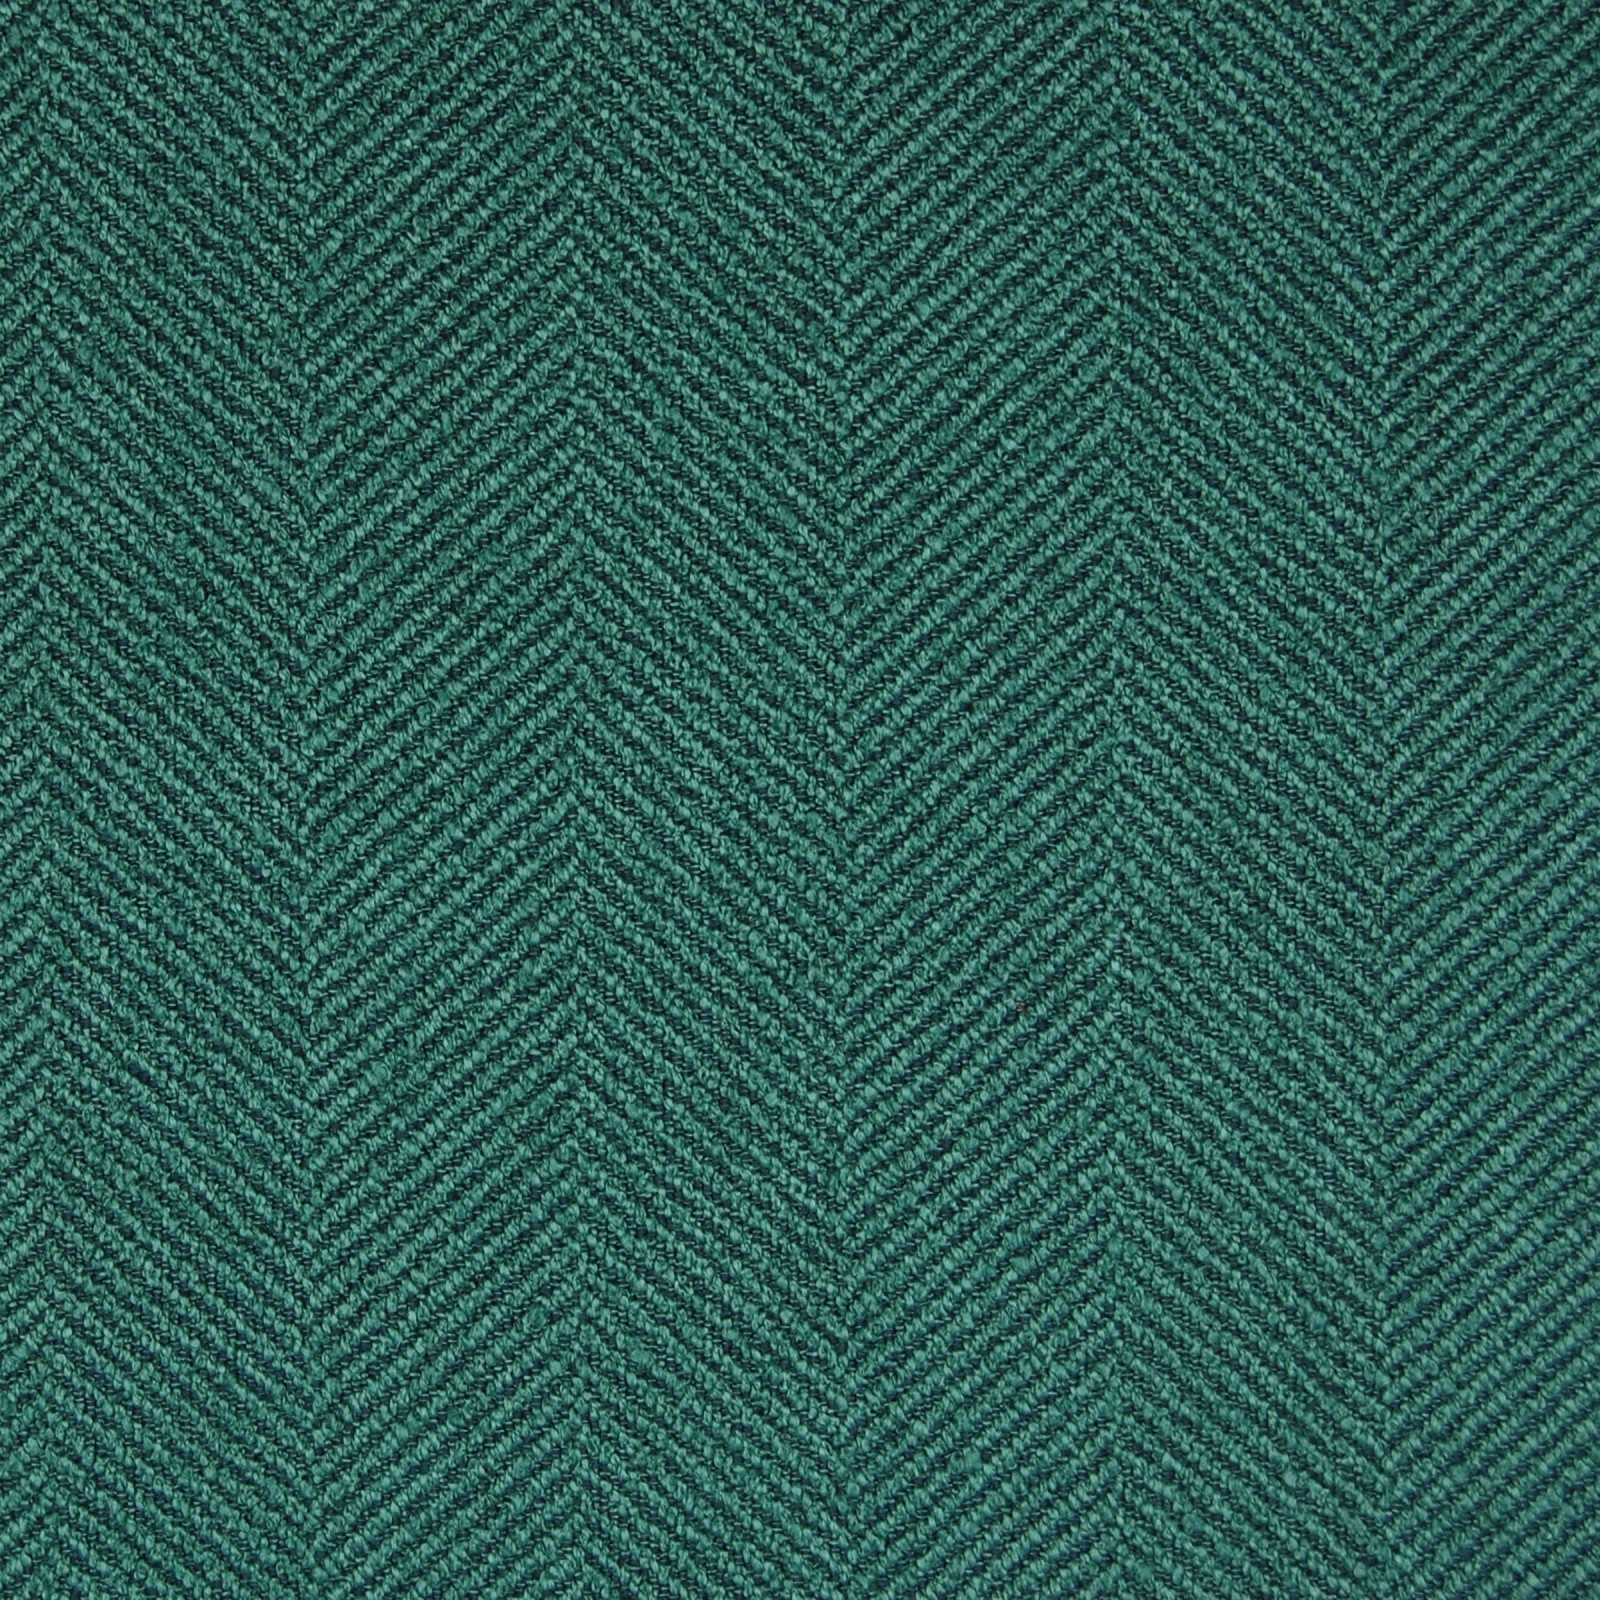 Teal Blue And Teal Herringbone Made In Usa Upholstery Fabric